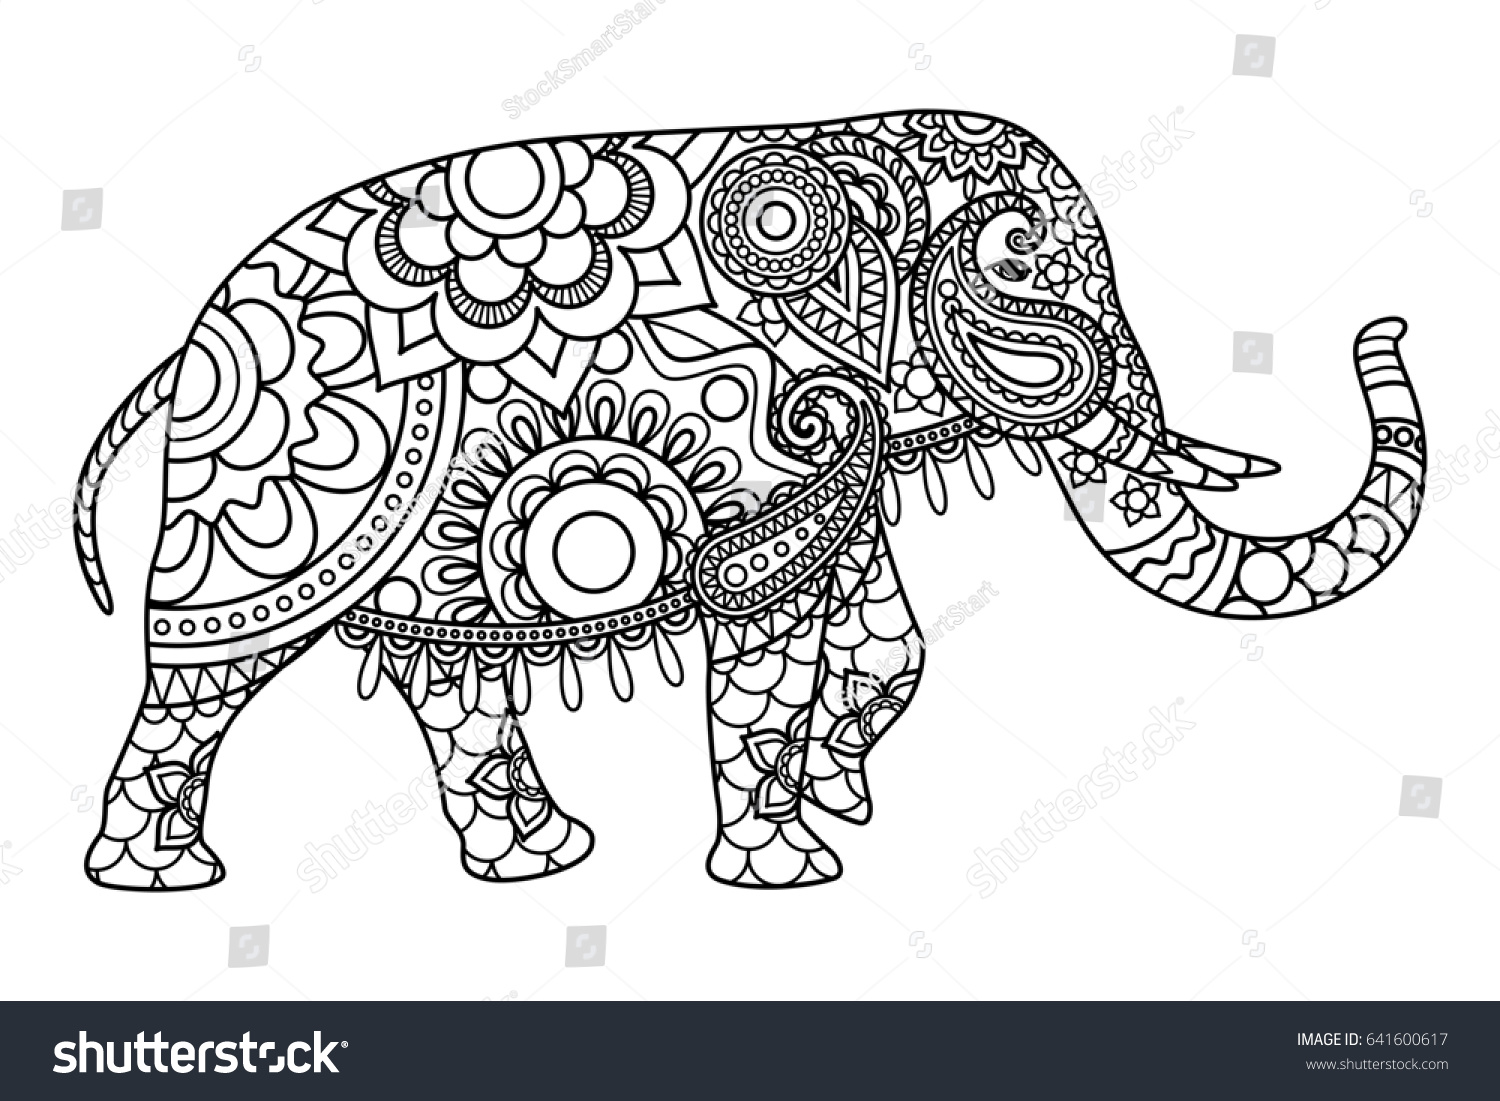 Indian Elephant Coloring Pages Template Illustration